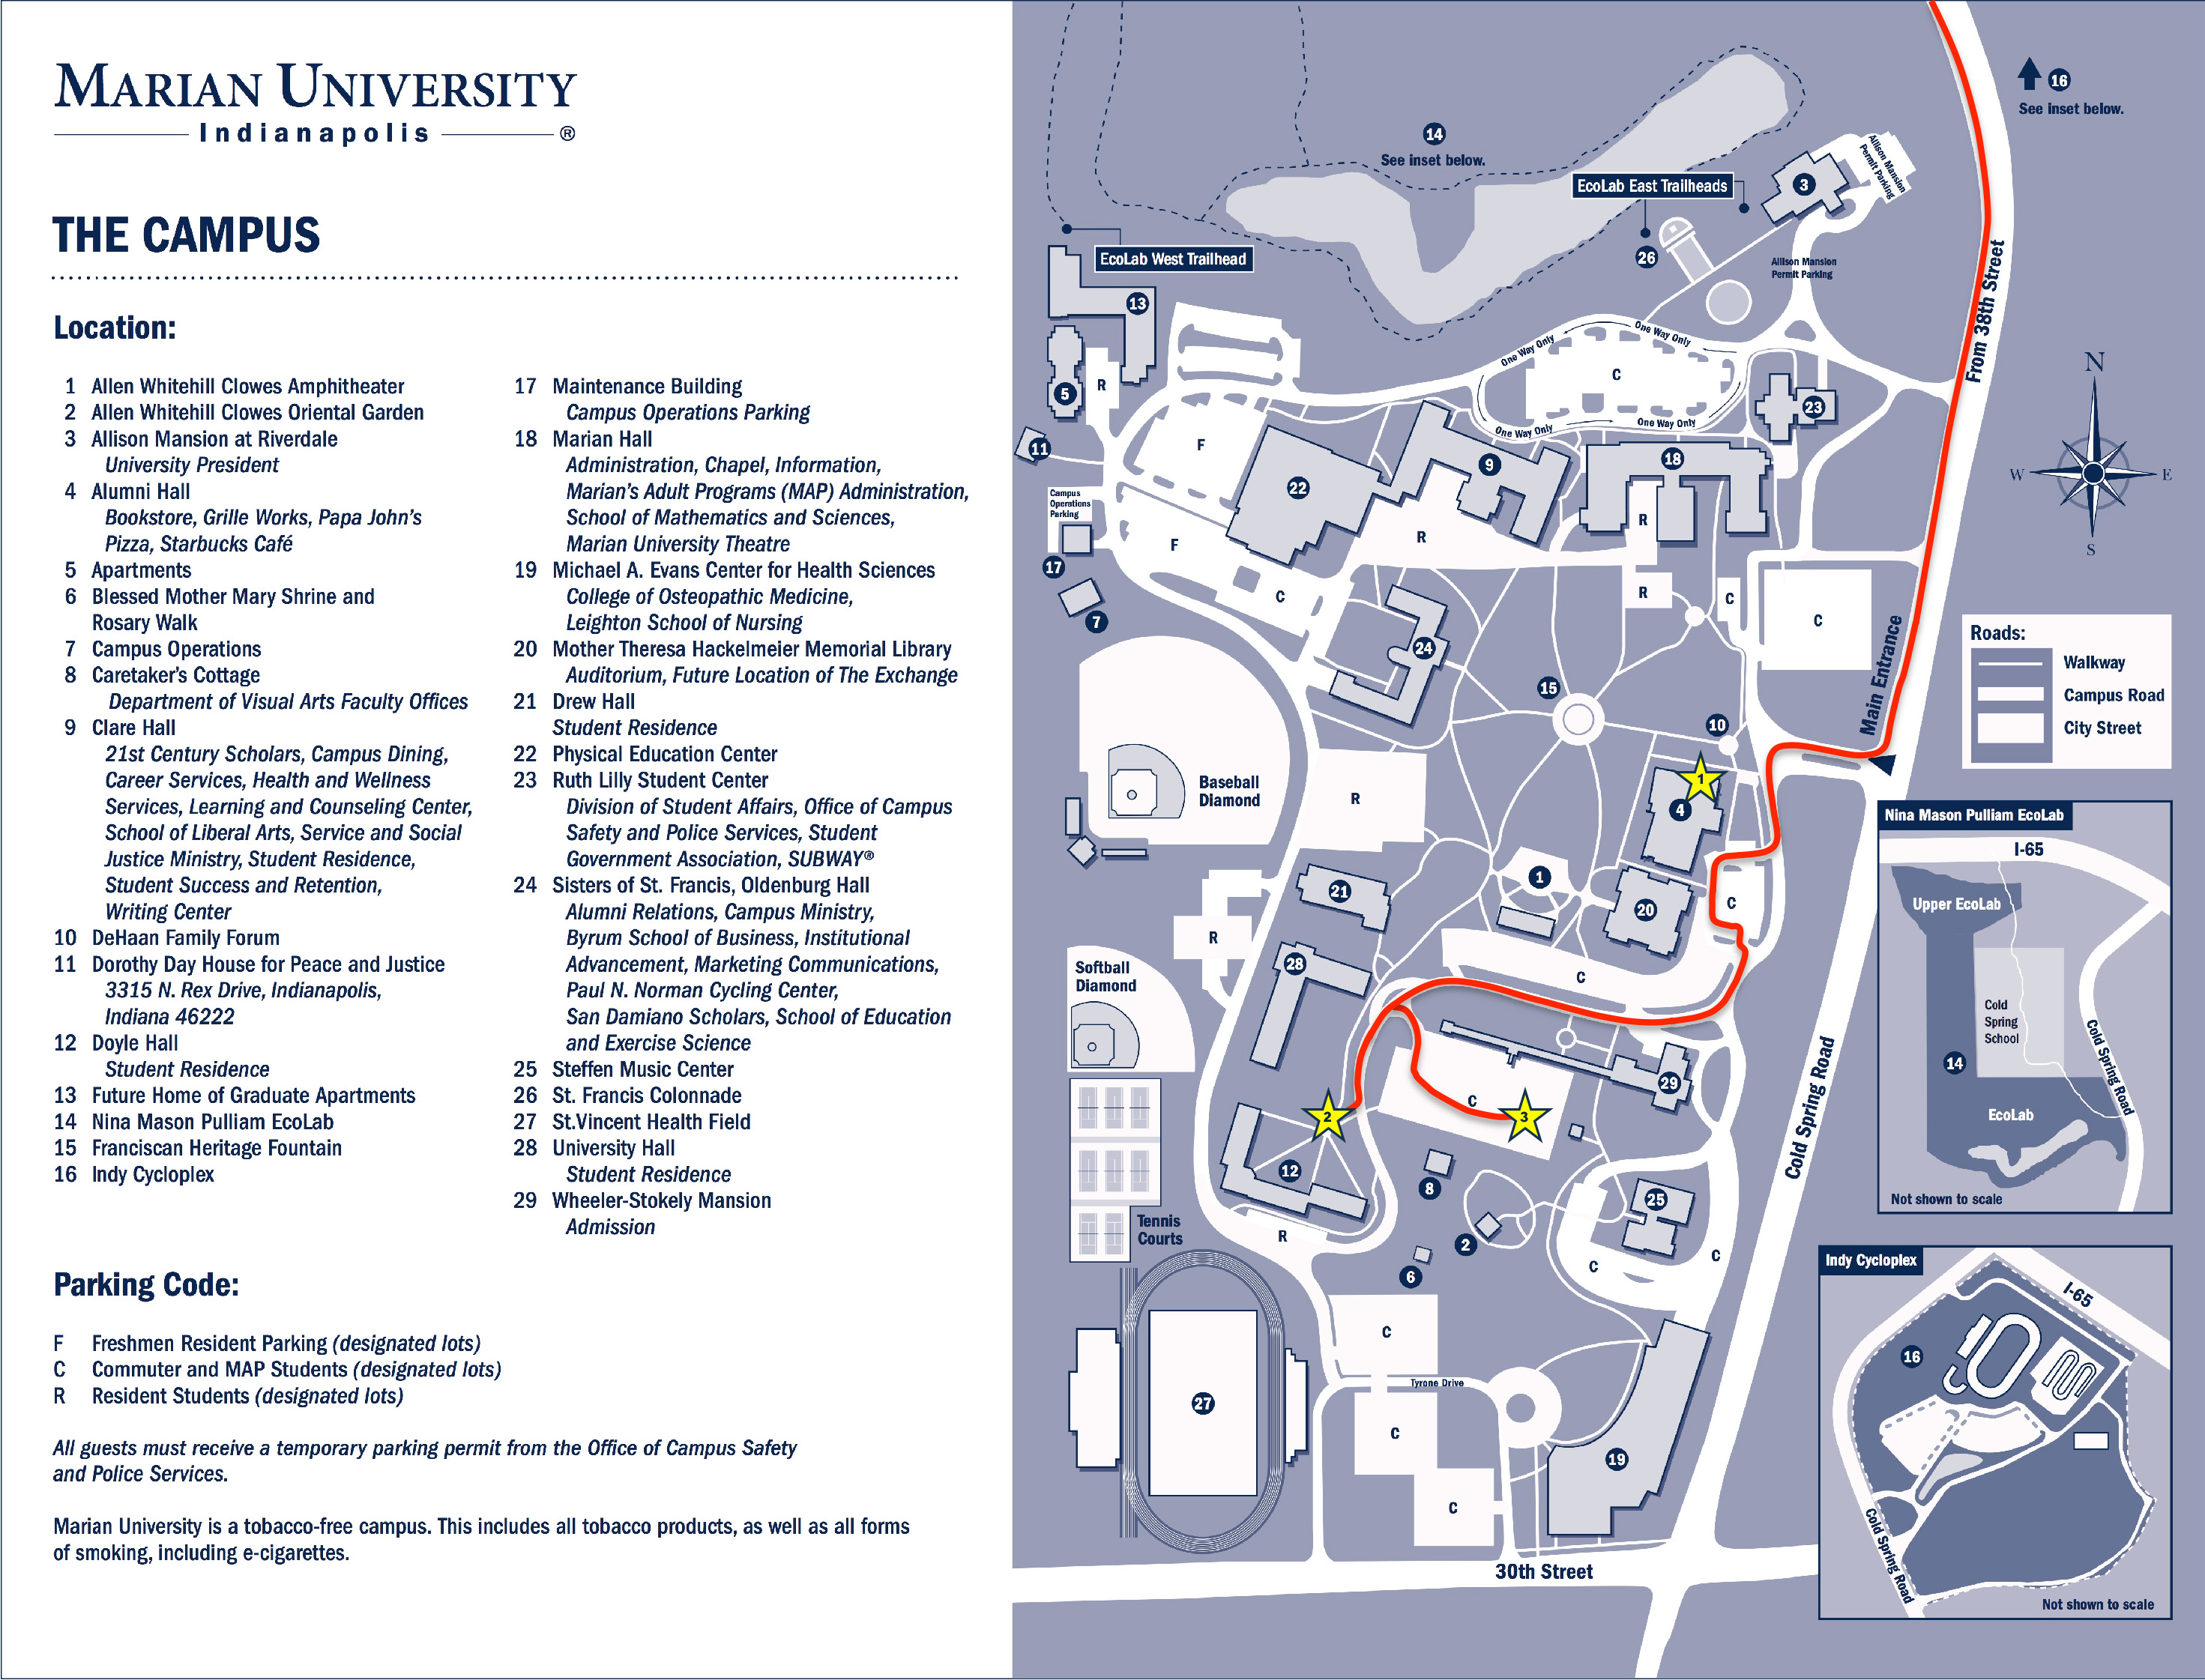 doyle hall move in information